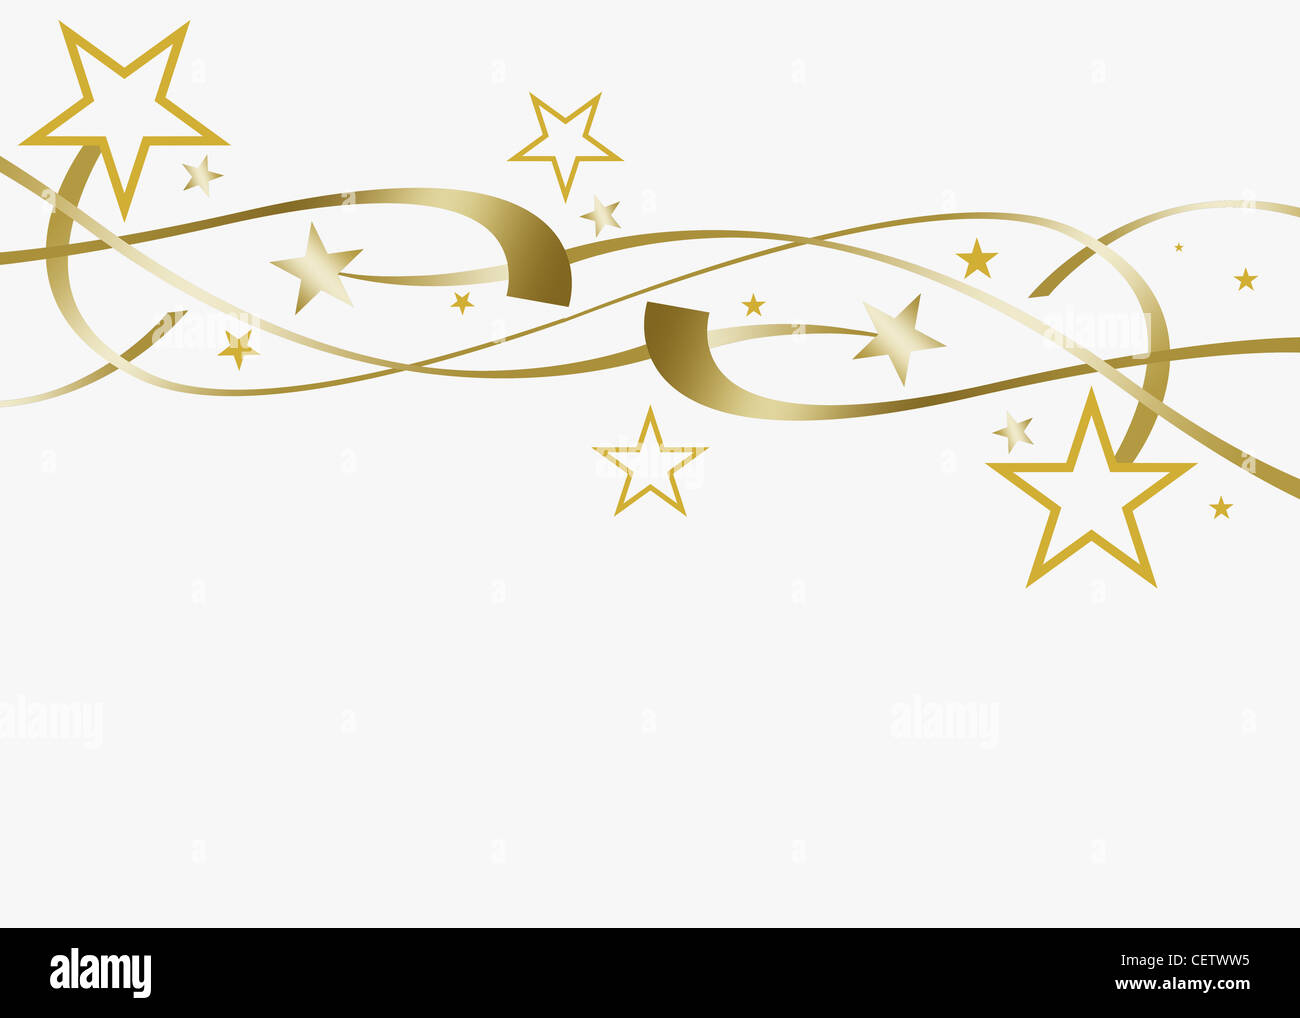 festive stars and streamers on white background stock photo